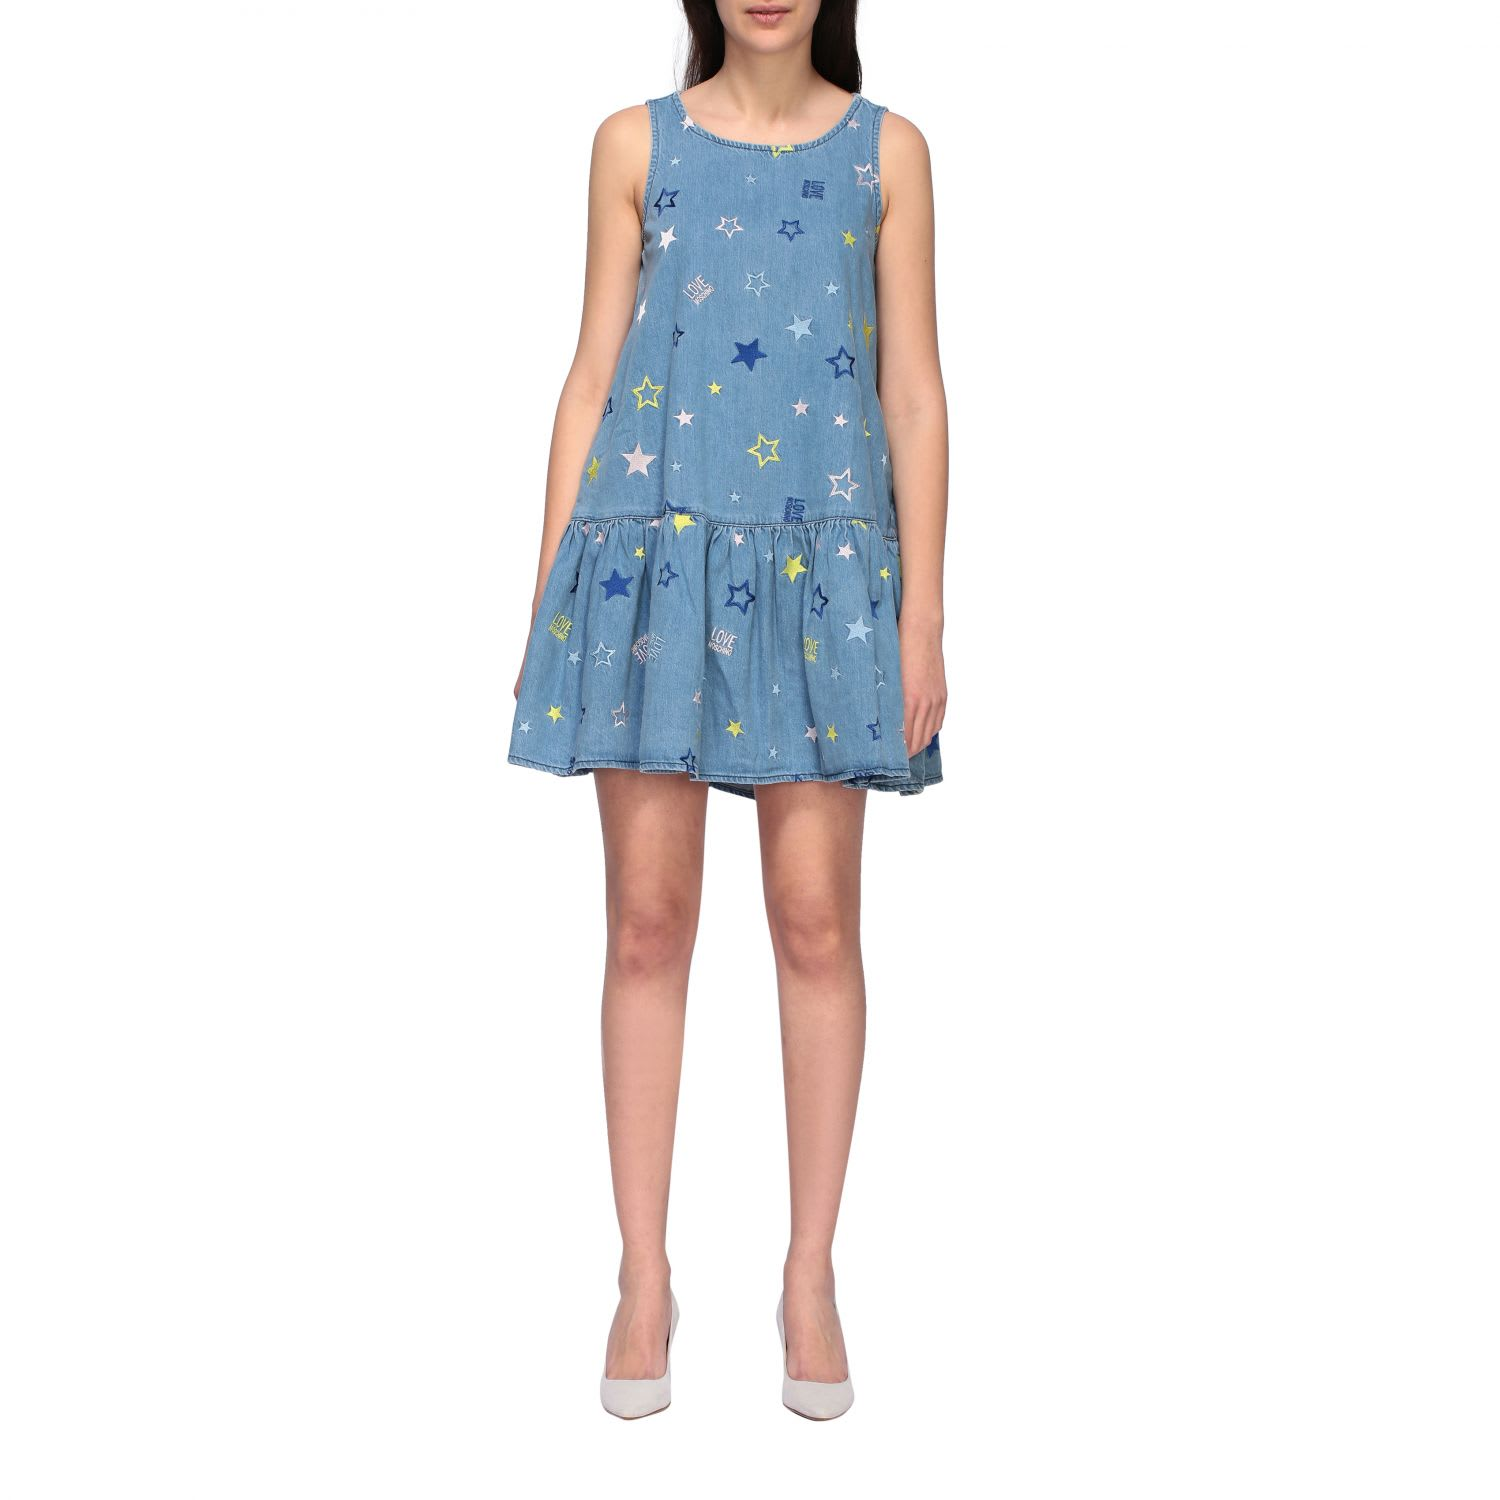 Buy Love Moschino Dress Love Moschino Denim Dress With Embroidered Stars online, shop Love Moschino with free shipping